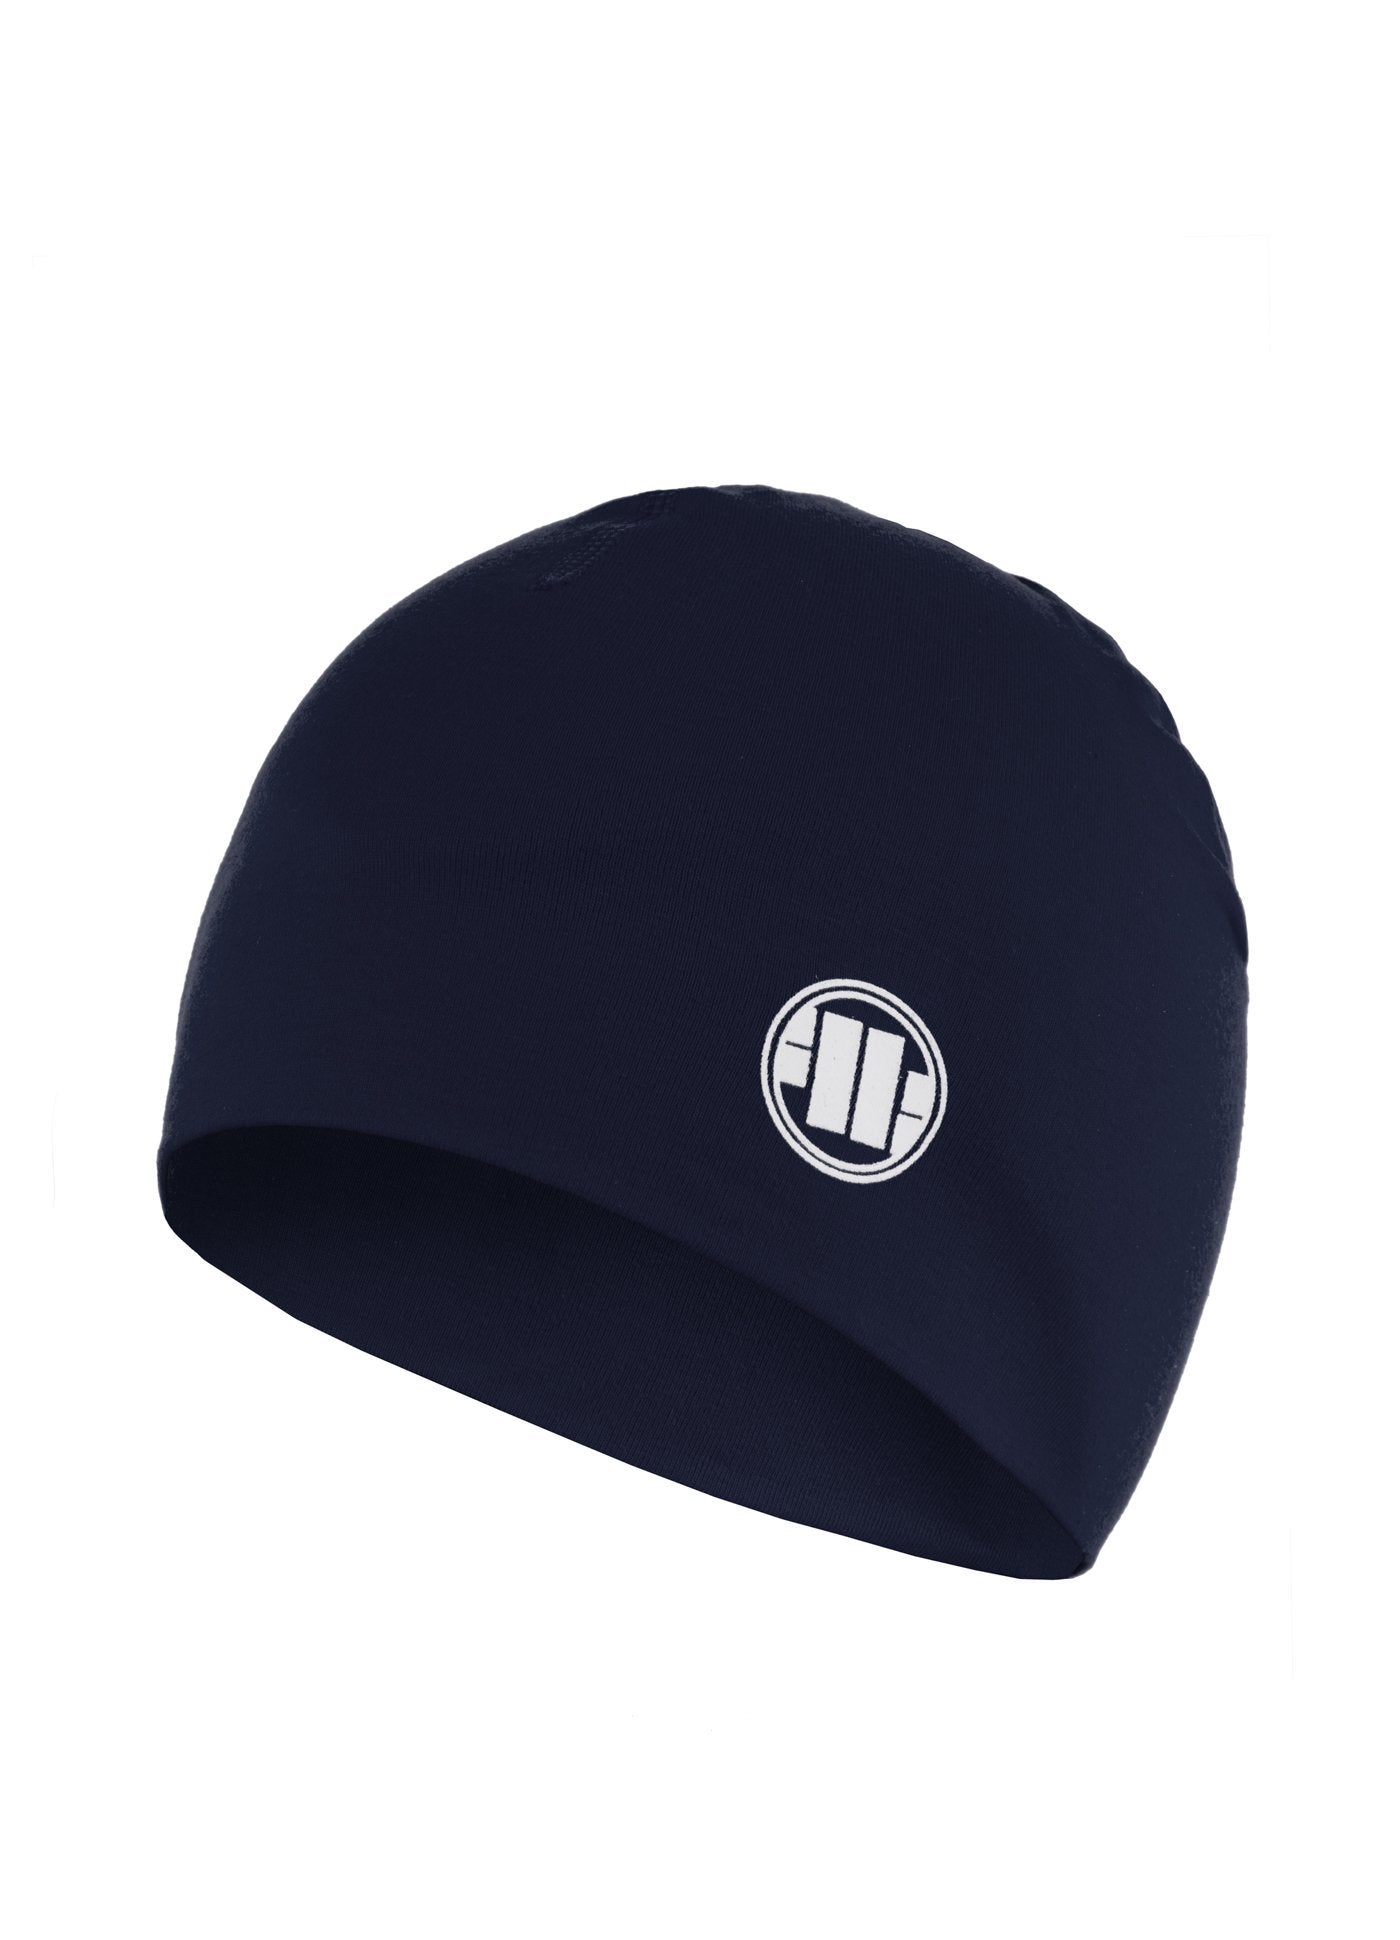 Compression Beanie SMALL LOGO Dark Navy - Pitbull West Coast U.S.A.